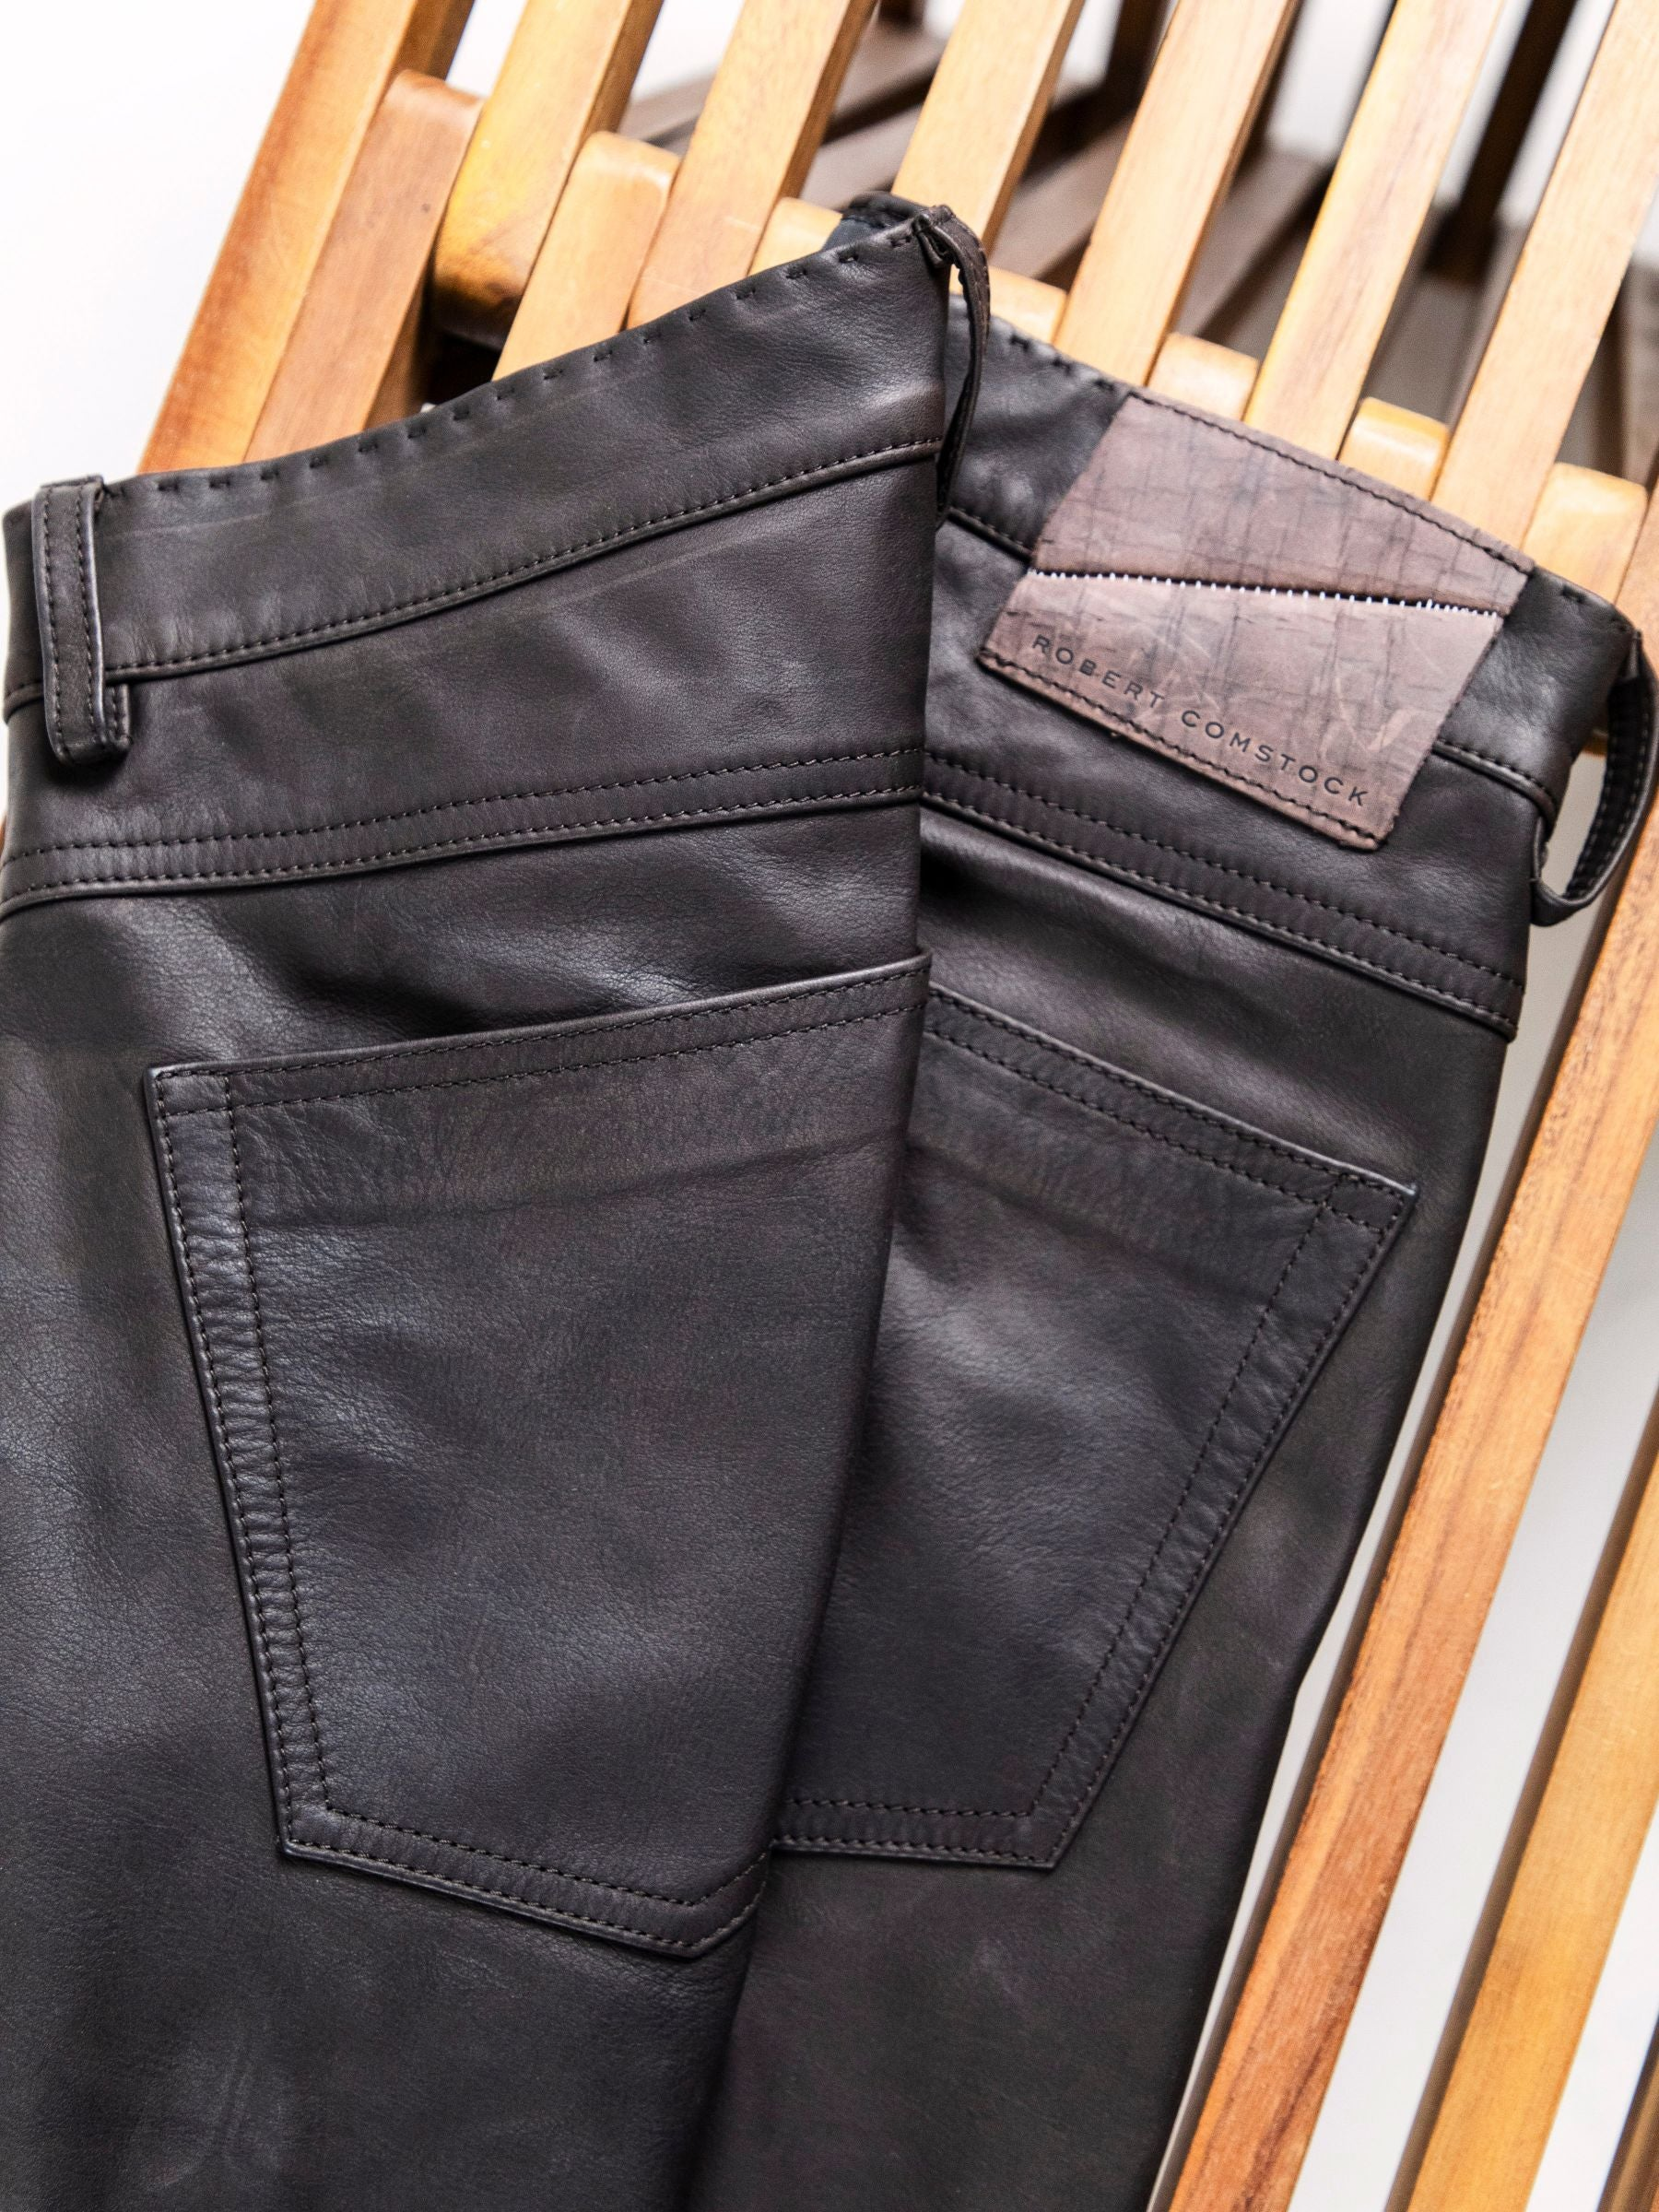 5-pocket Italian calf Jeans, nothing left to comment